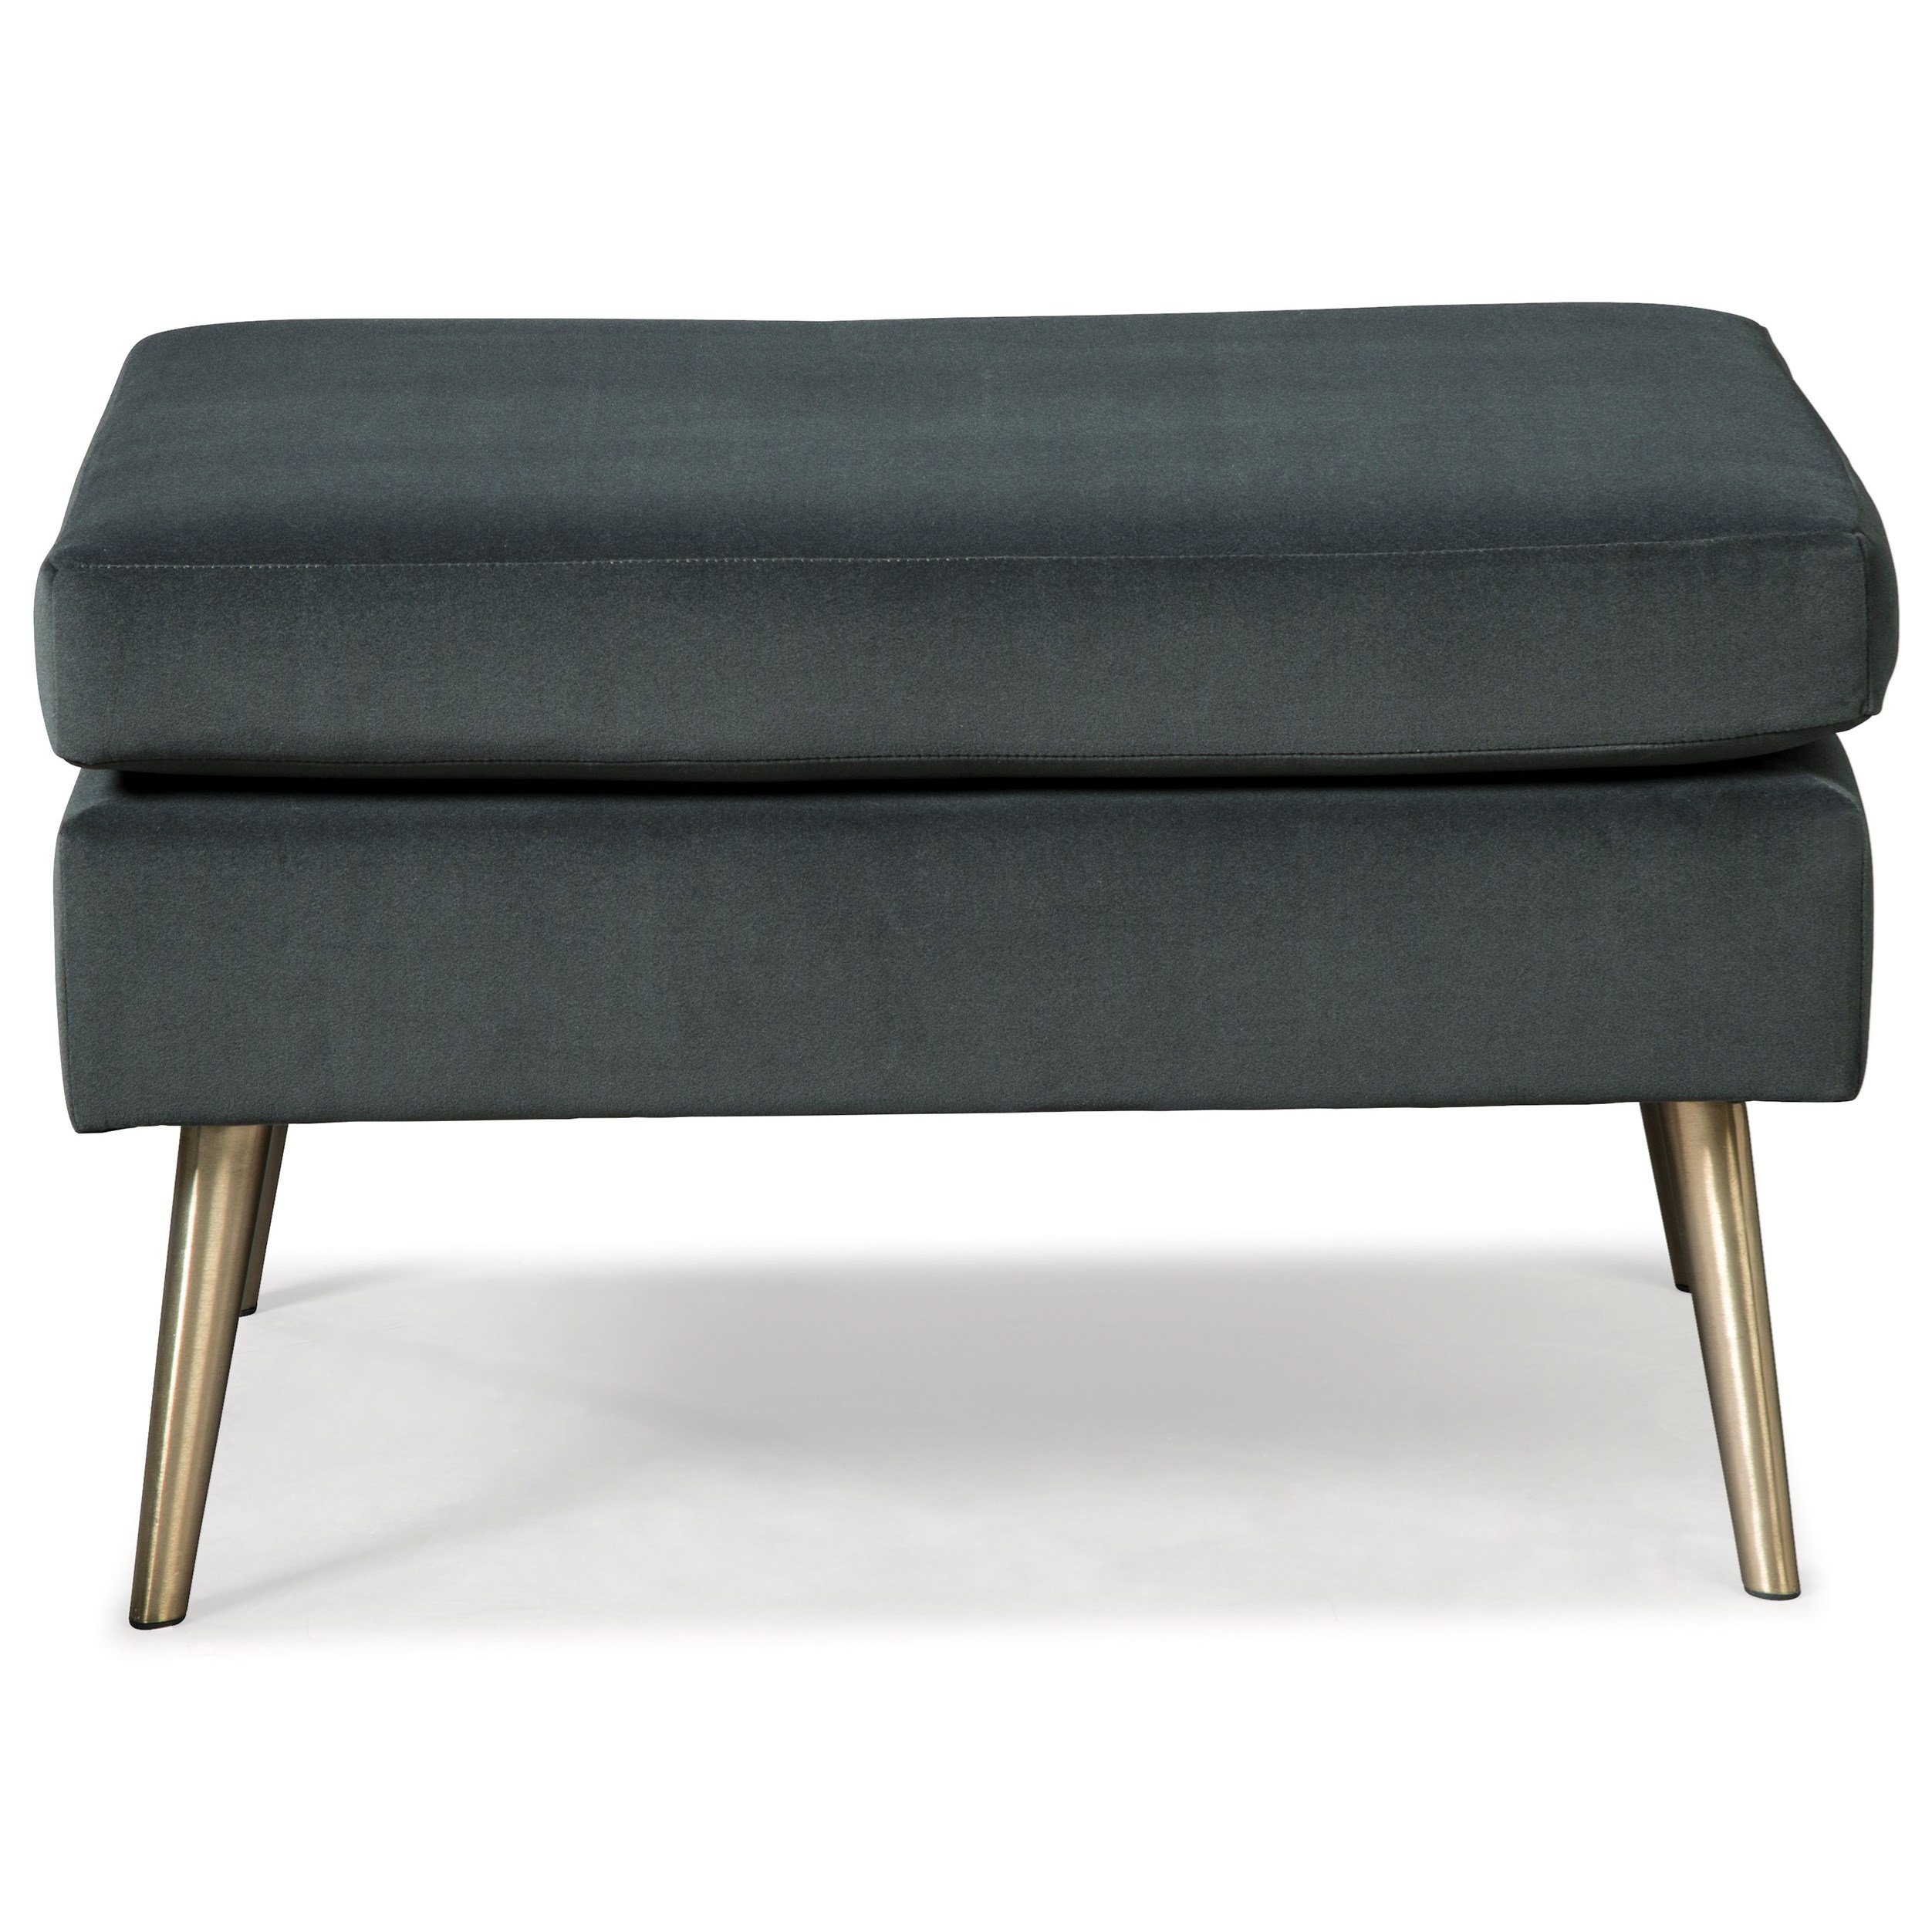 Trafton Ottoman by Best Home Furnishings at Baer's Furniture